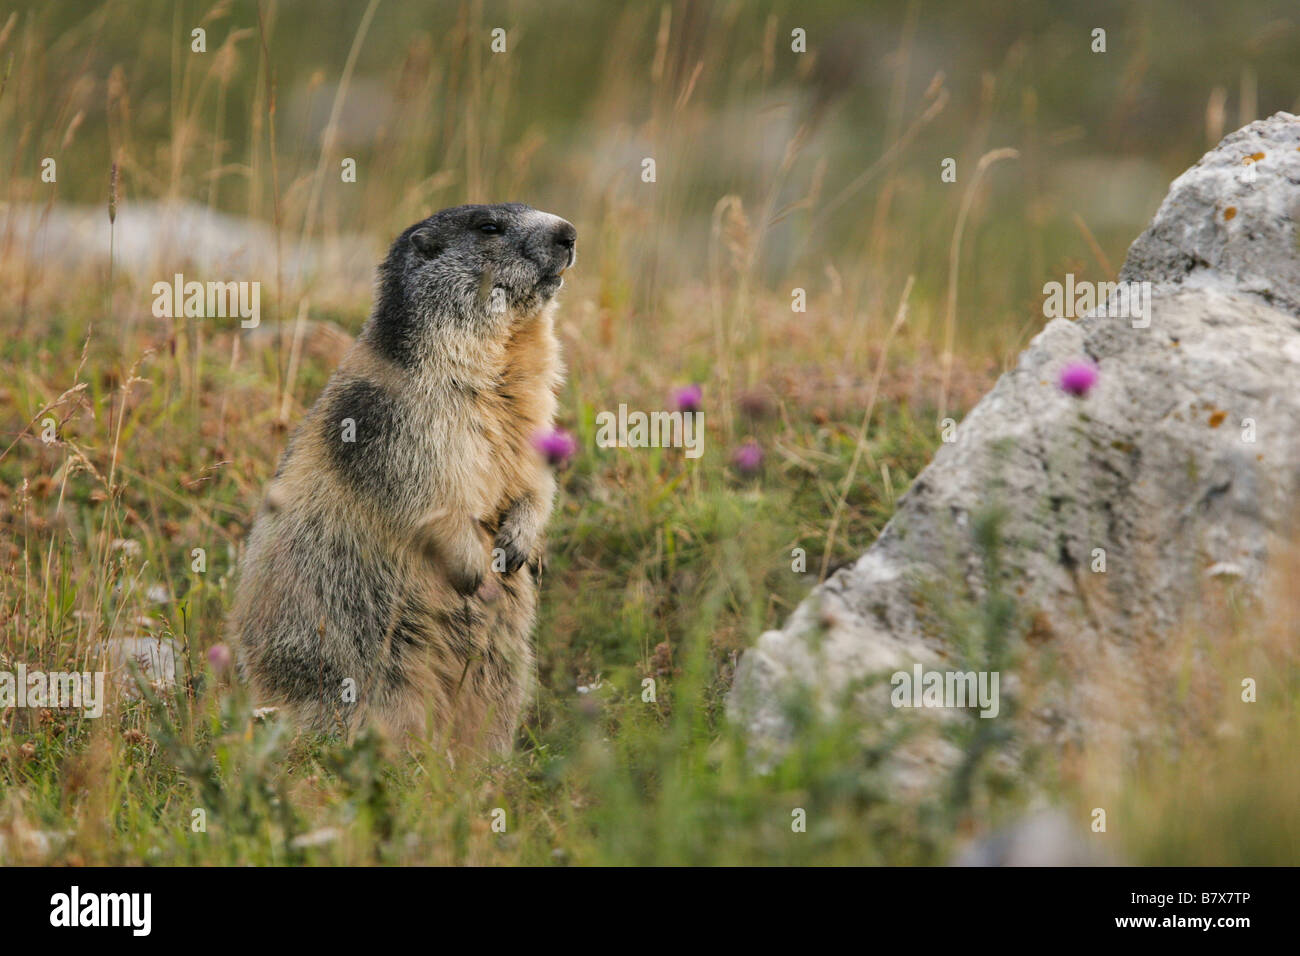 Marmot, Marmota, Sciuridae, ground squirrel, rodent, Mountains, Alps, Apennines,Gran Paradiso,National Park, Italy - Stock Image